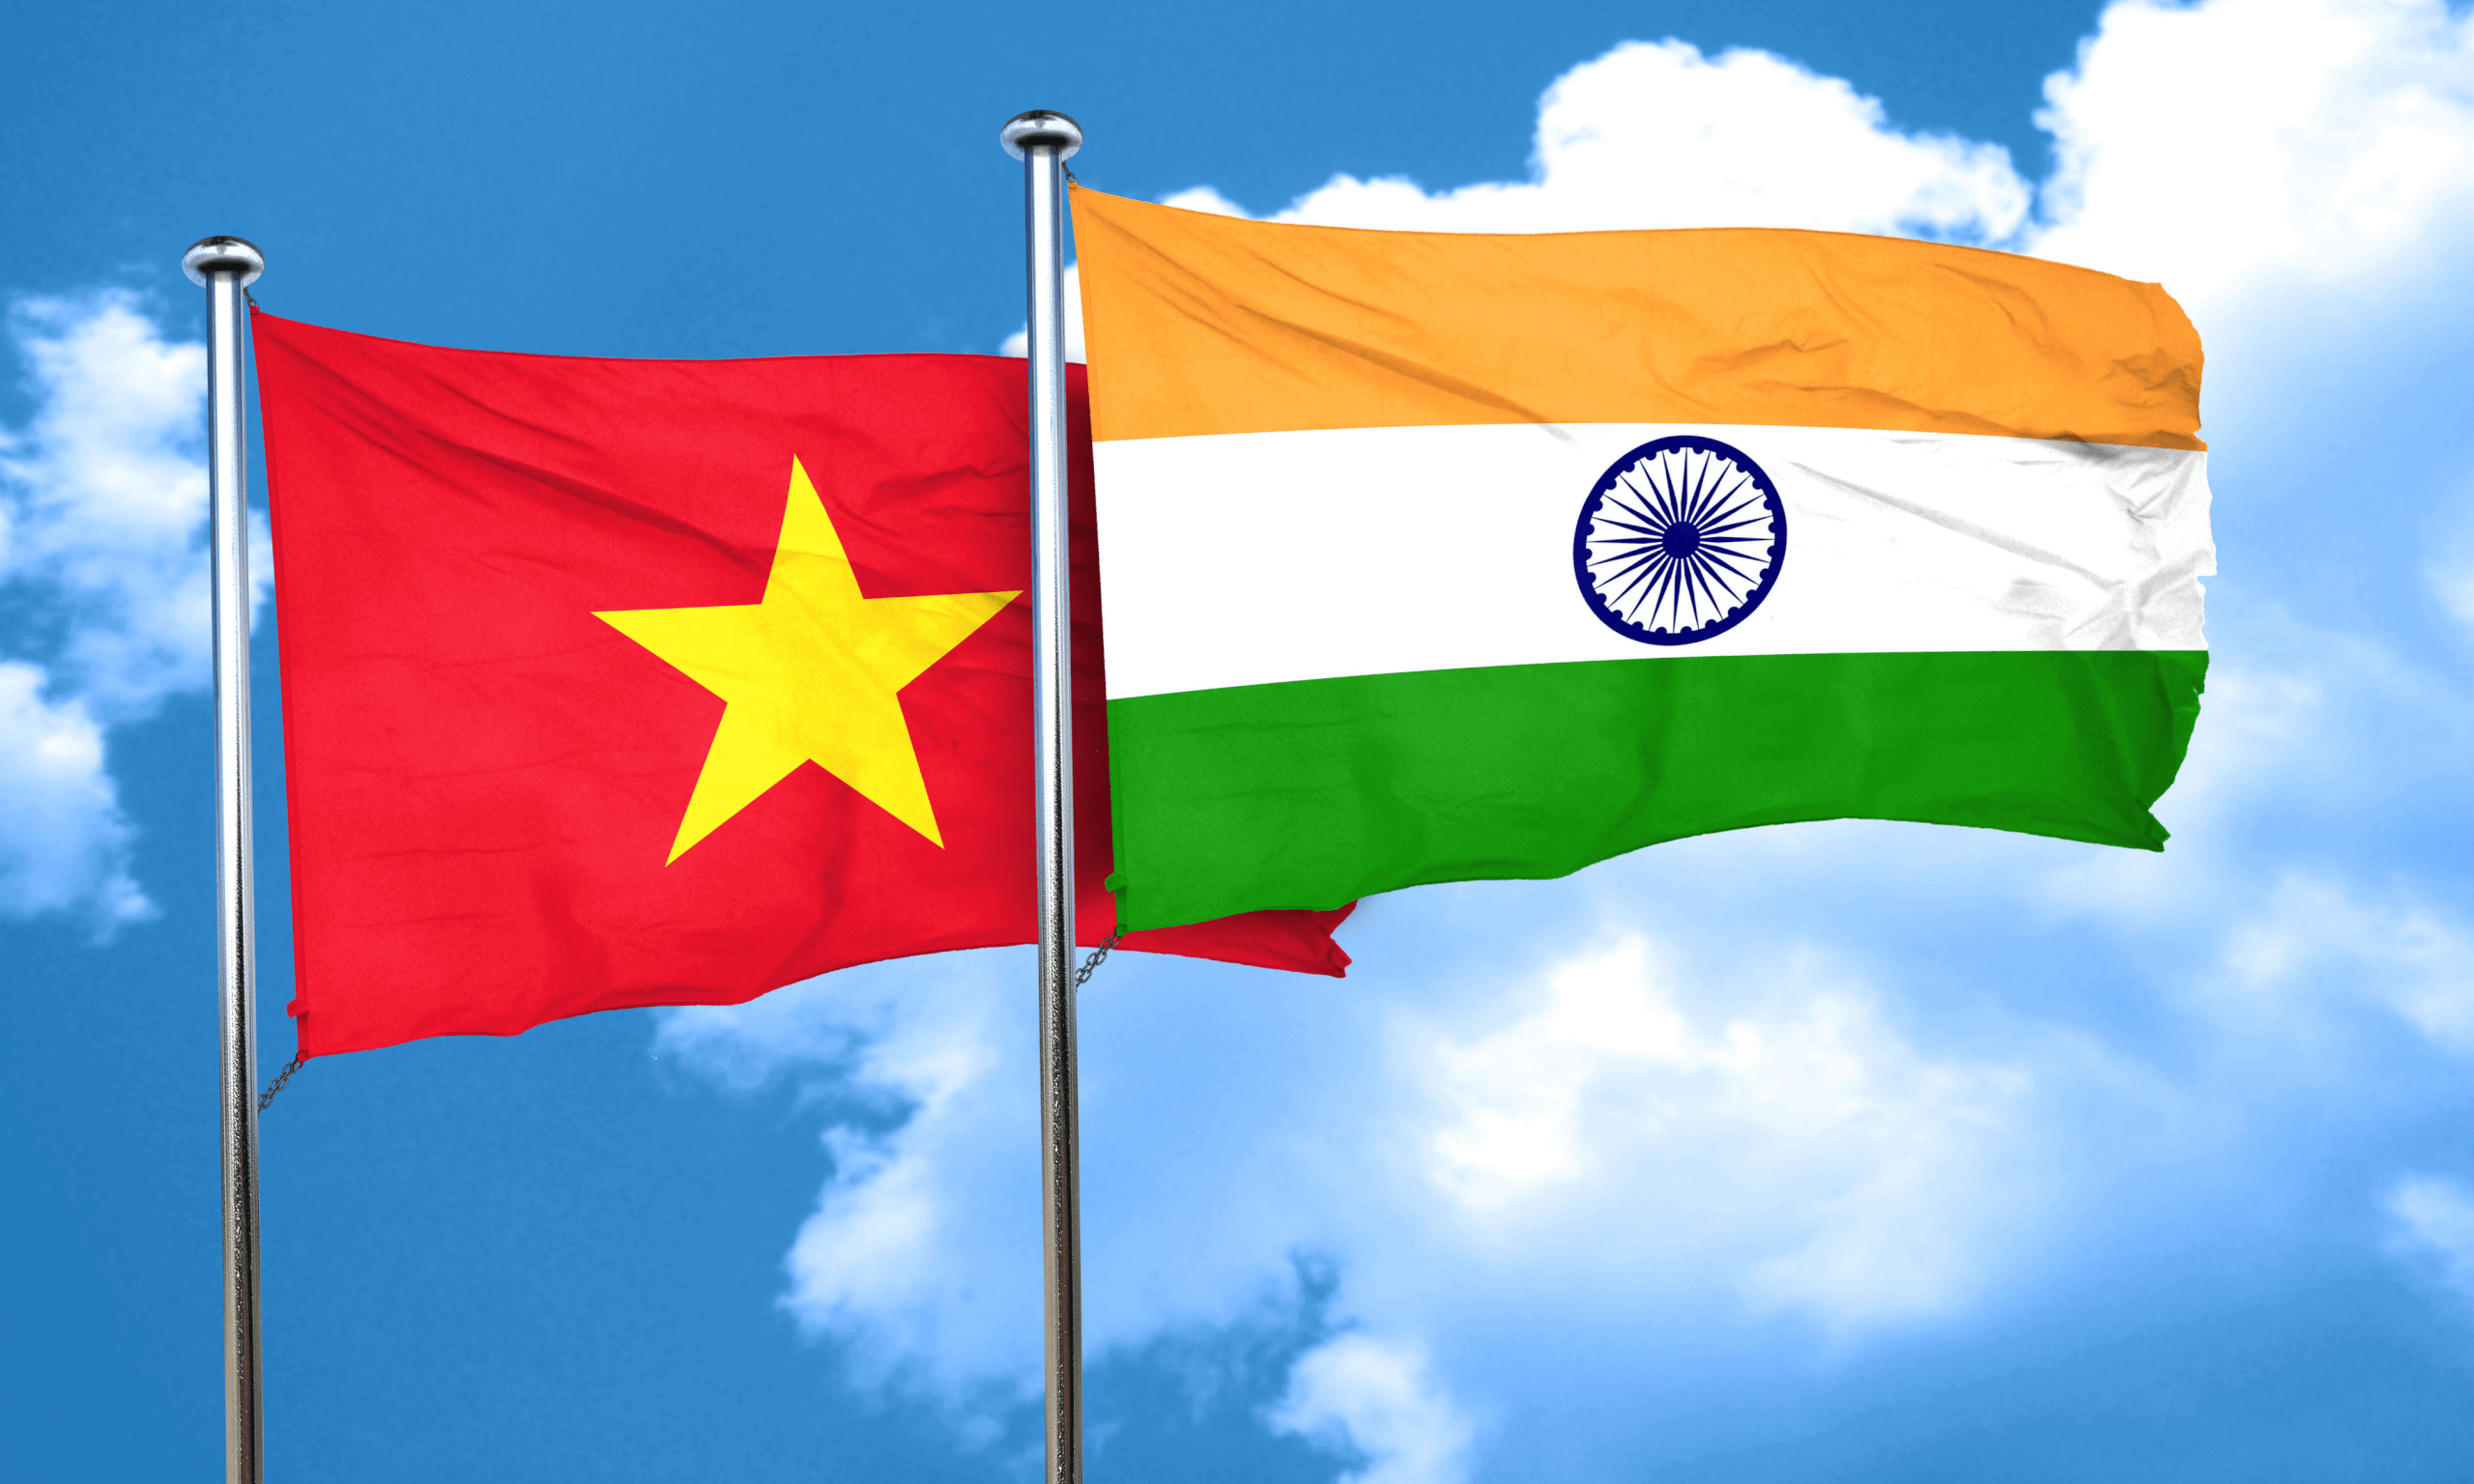 Centrality of Vietnam in India's 'Act East' Policy